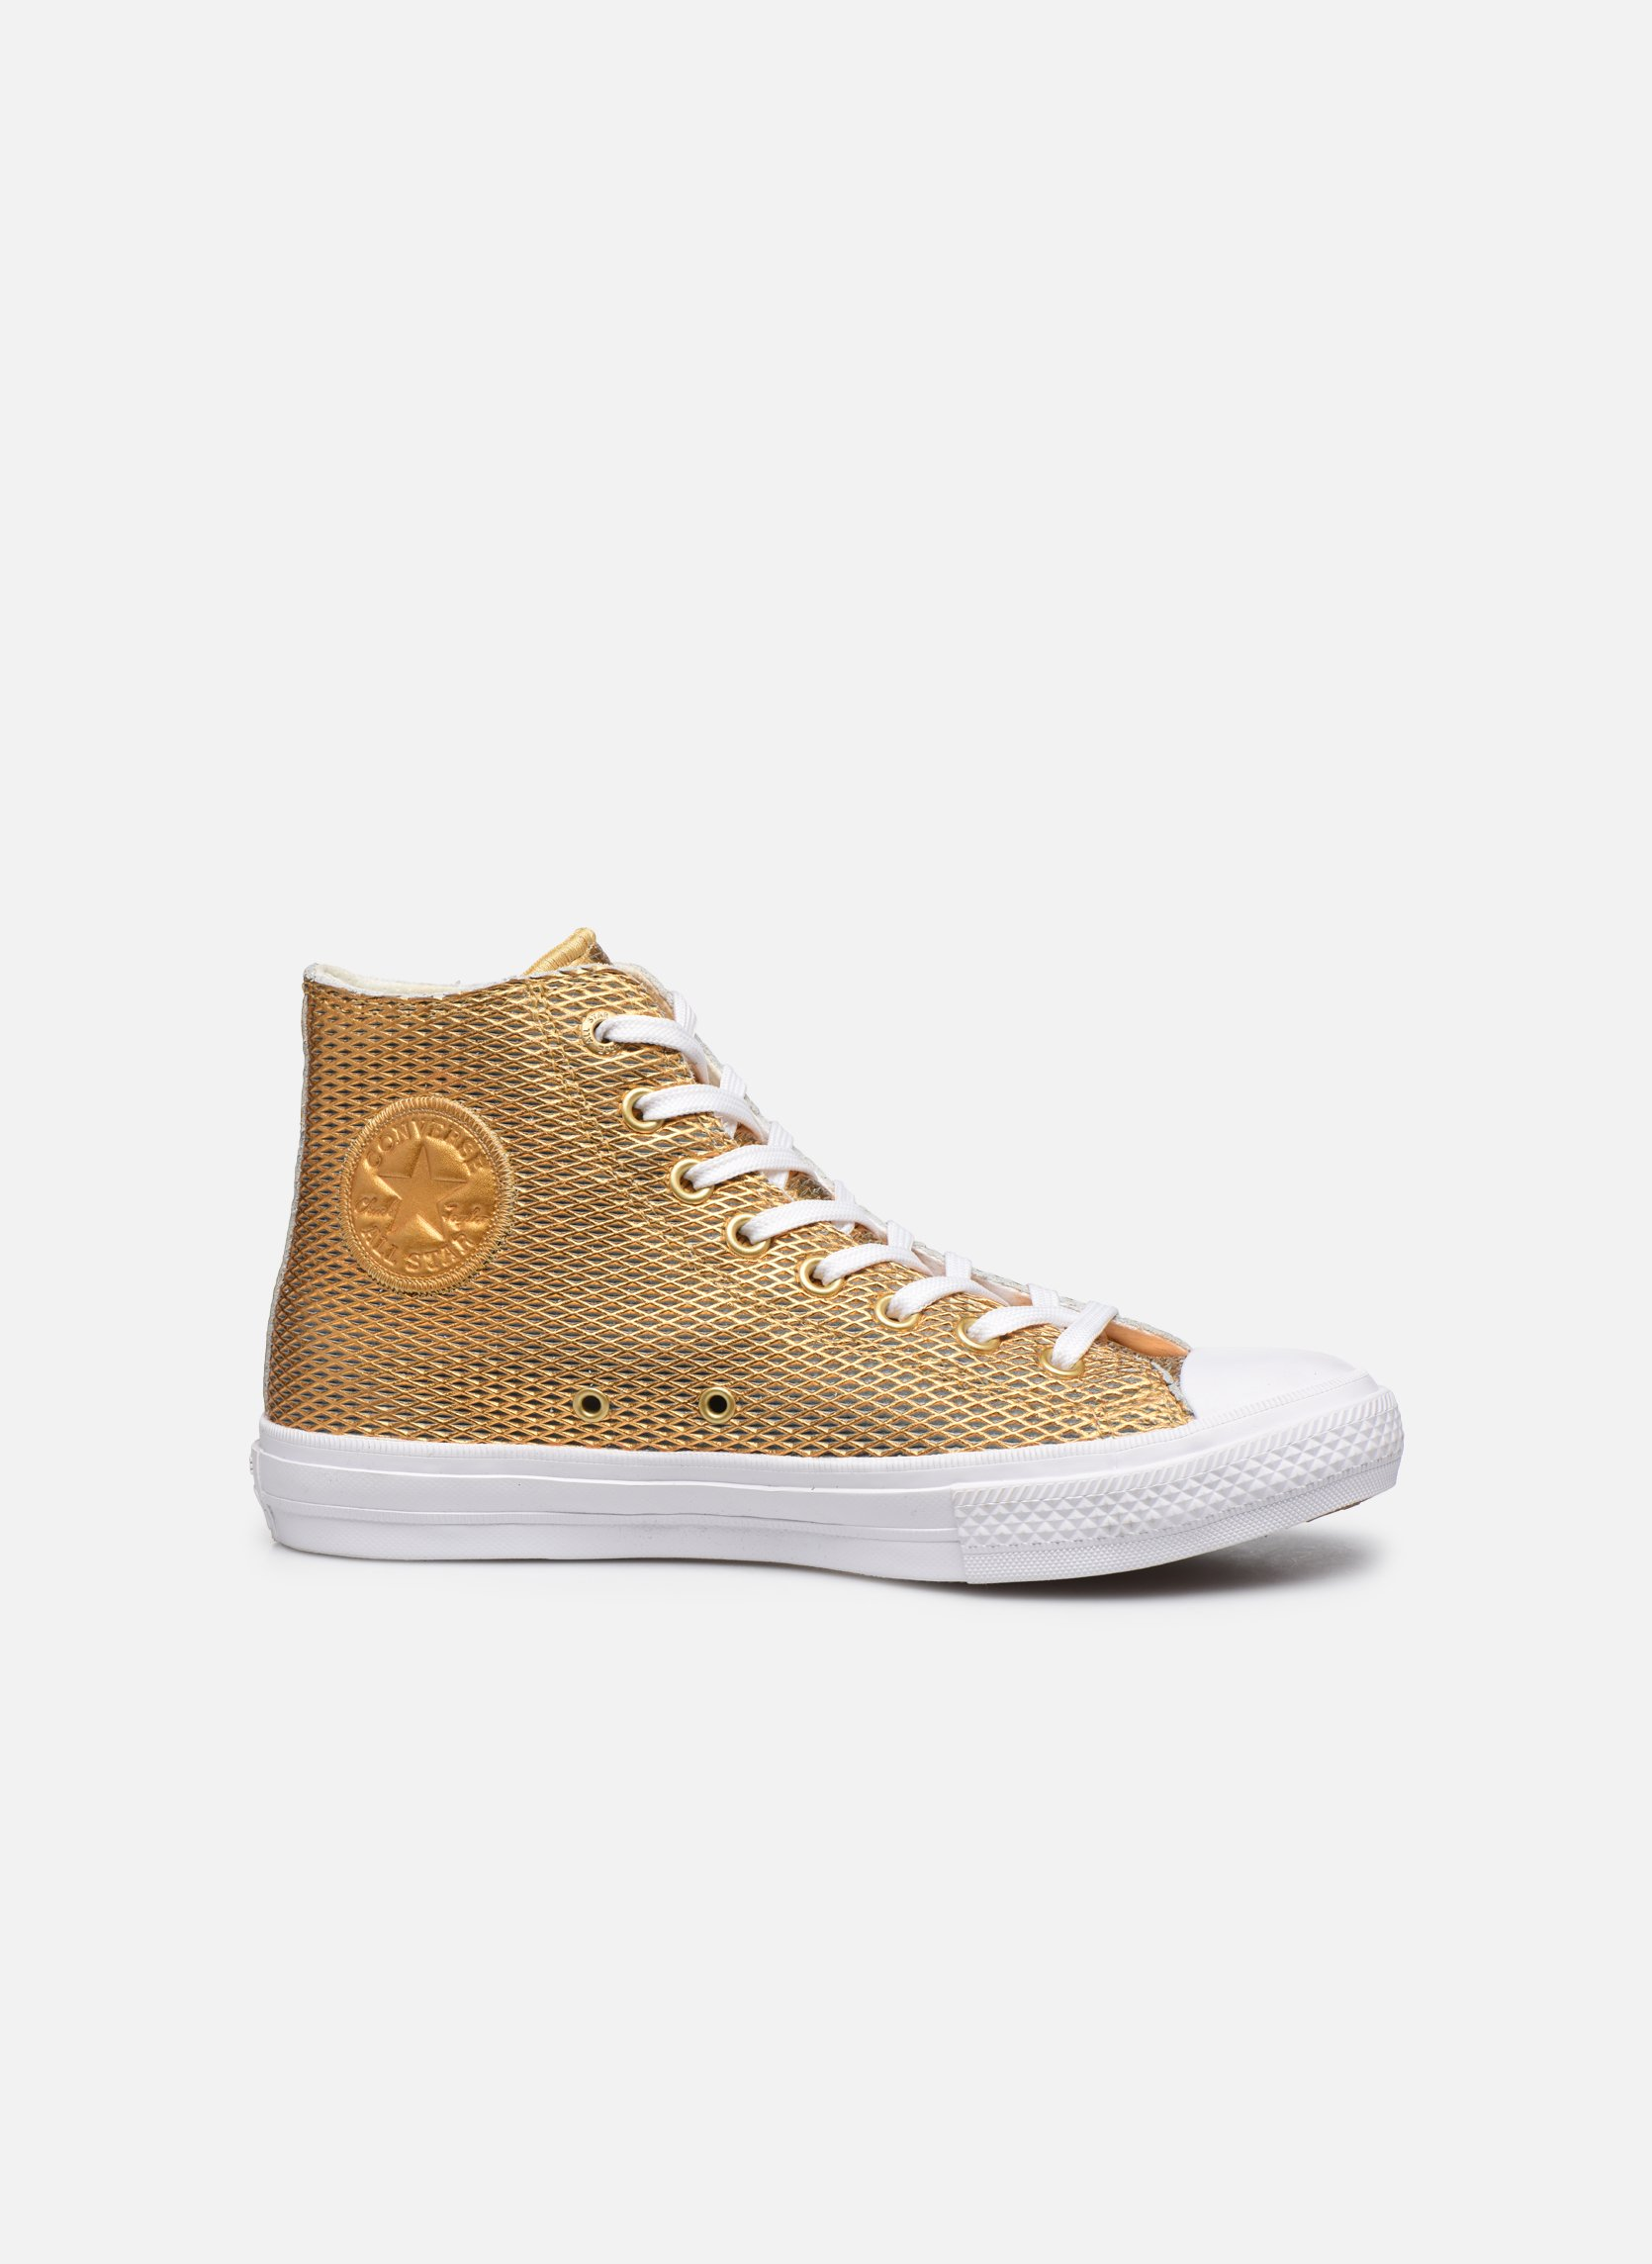 Chuck Taylor All Star II Hi Perf Metallic Leather Gold/White/White